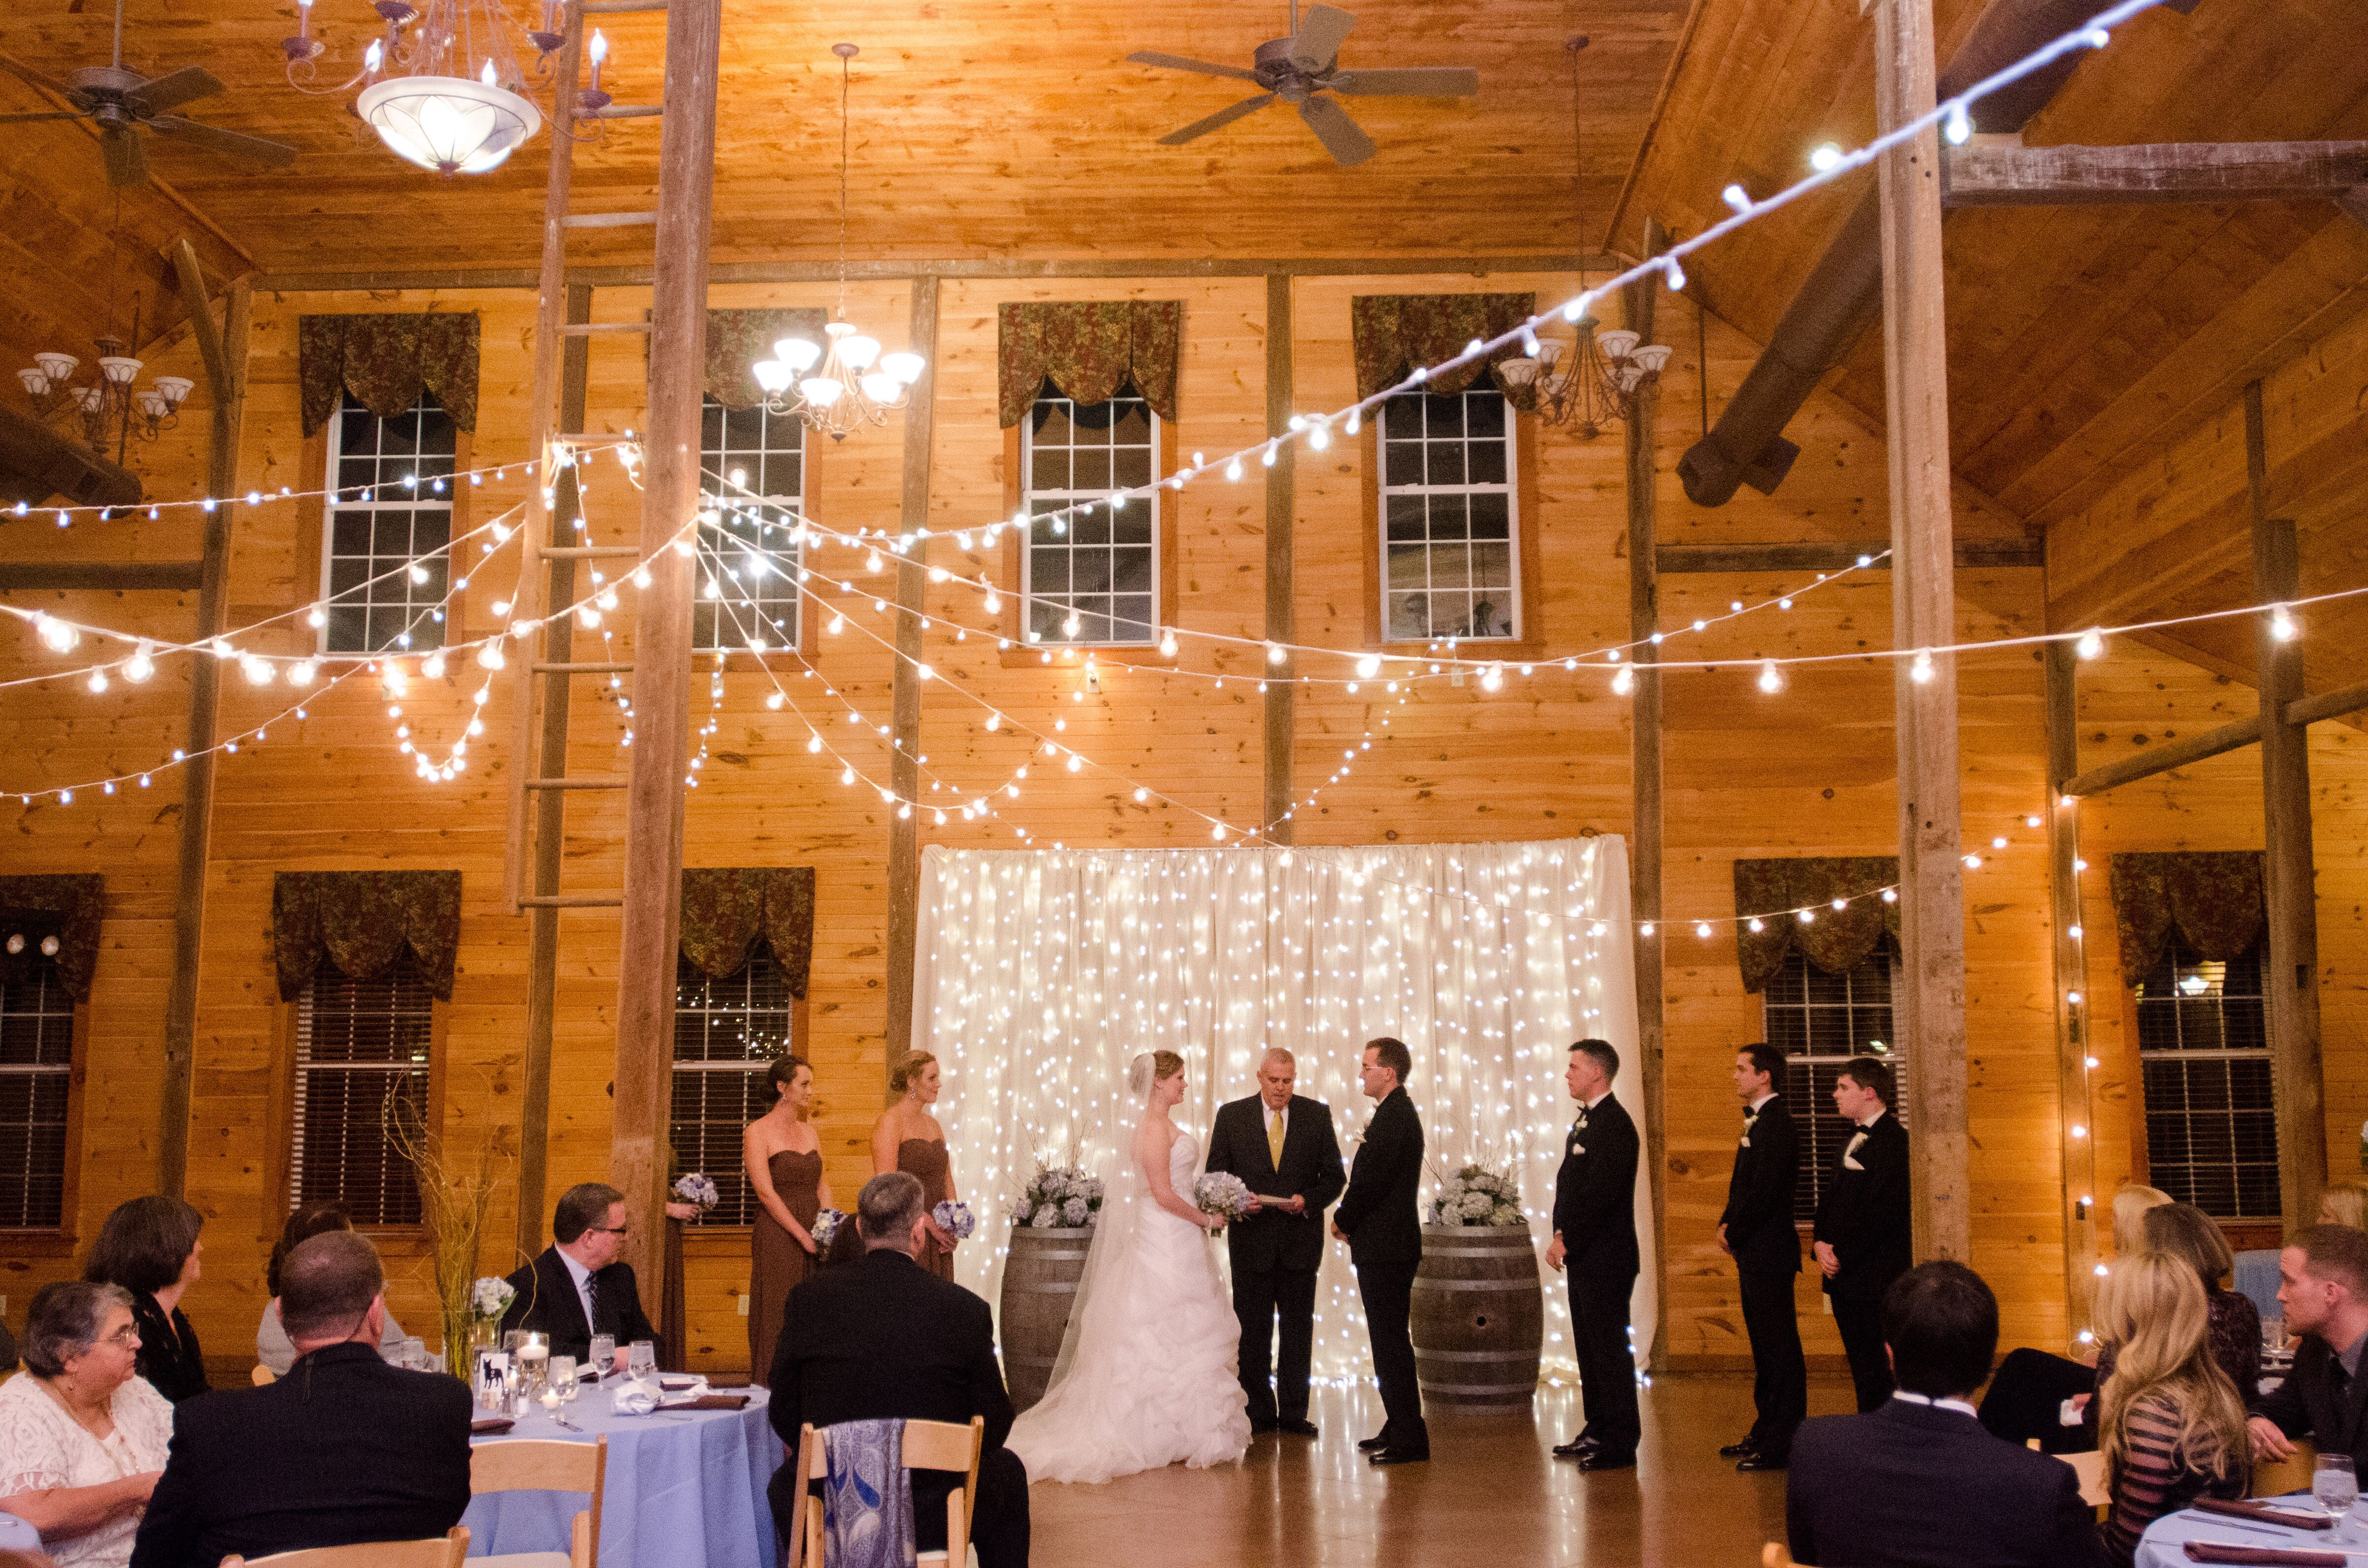 Elegant Drapery At Indoor Ceremony: Indoor Ceremony With Lighted Curtain Backdrop